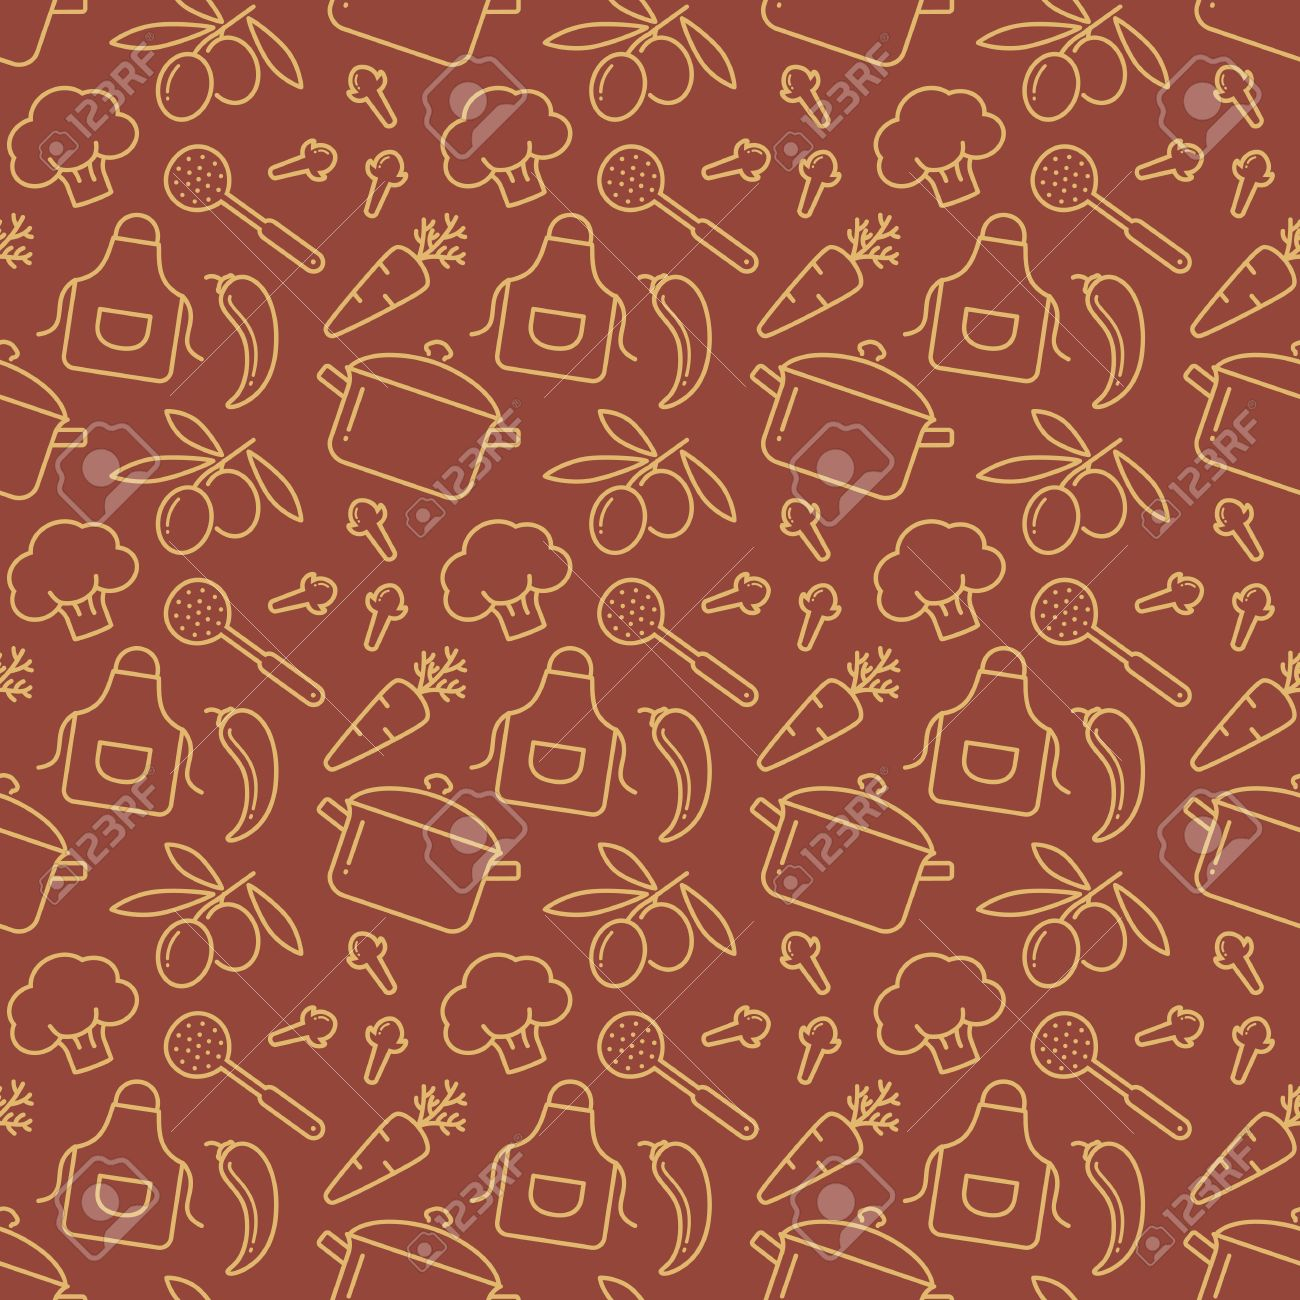 Food and kitchen seamless pattern. Brown background with line icons for culinary theme. Vector illustration. - 49905840